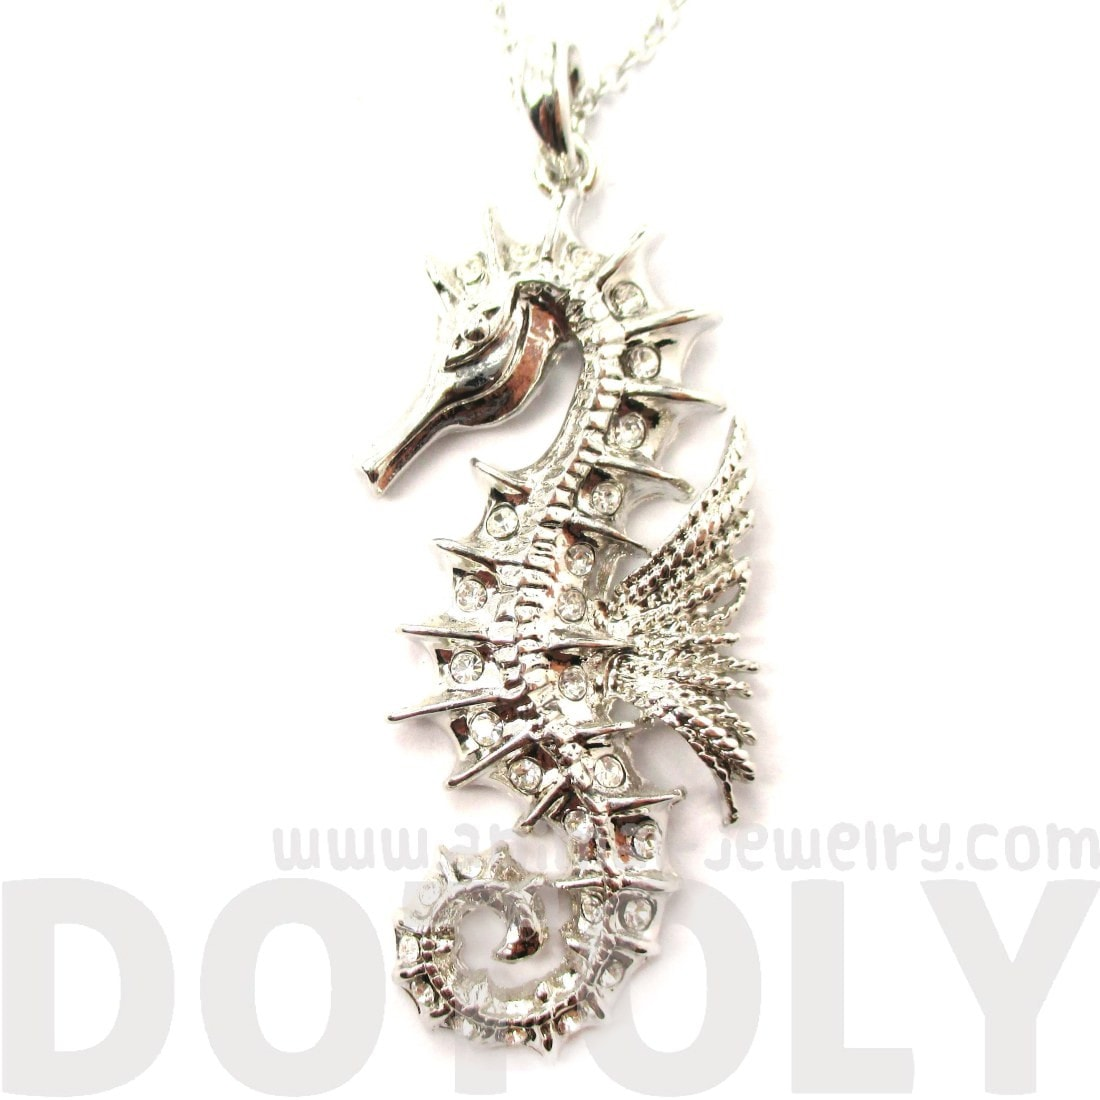 Seahorse Shaped Pendant Necklace in Silver with Rhinestones